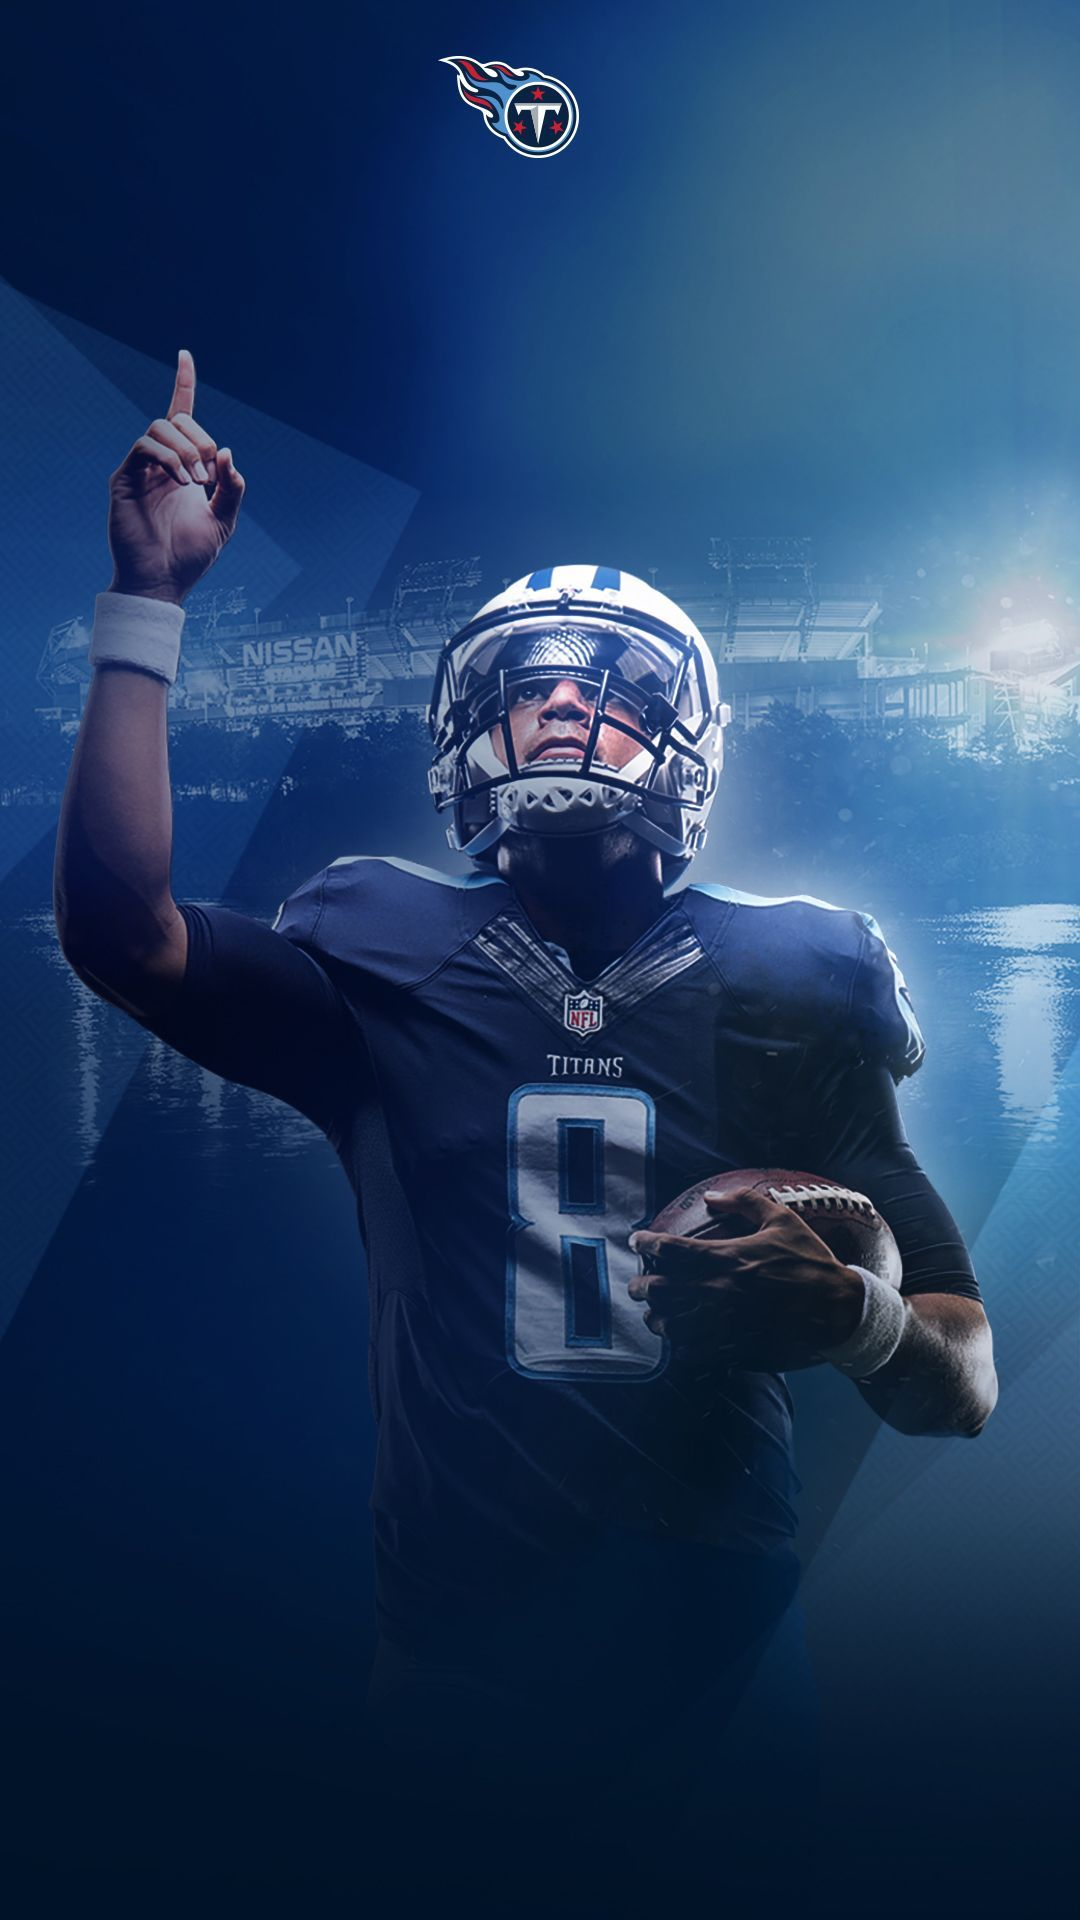 Color Rush Nfl Iphone Background in 2020 (With images